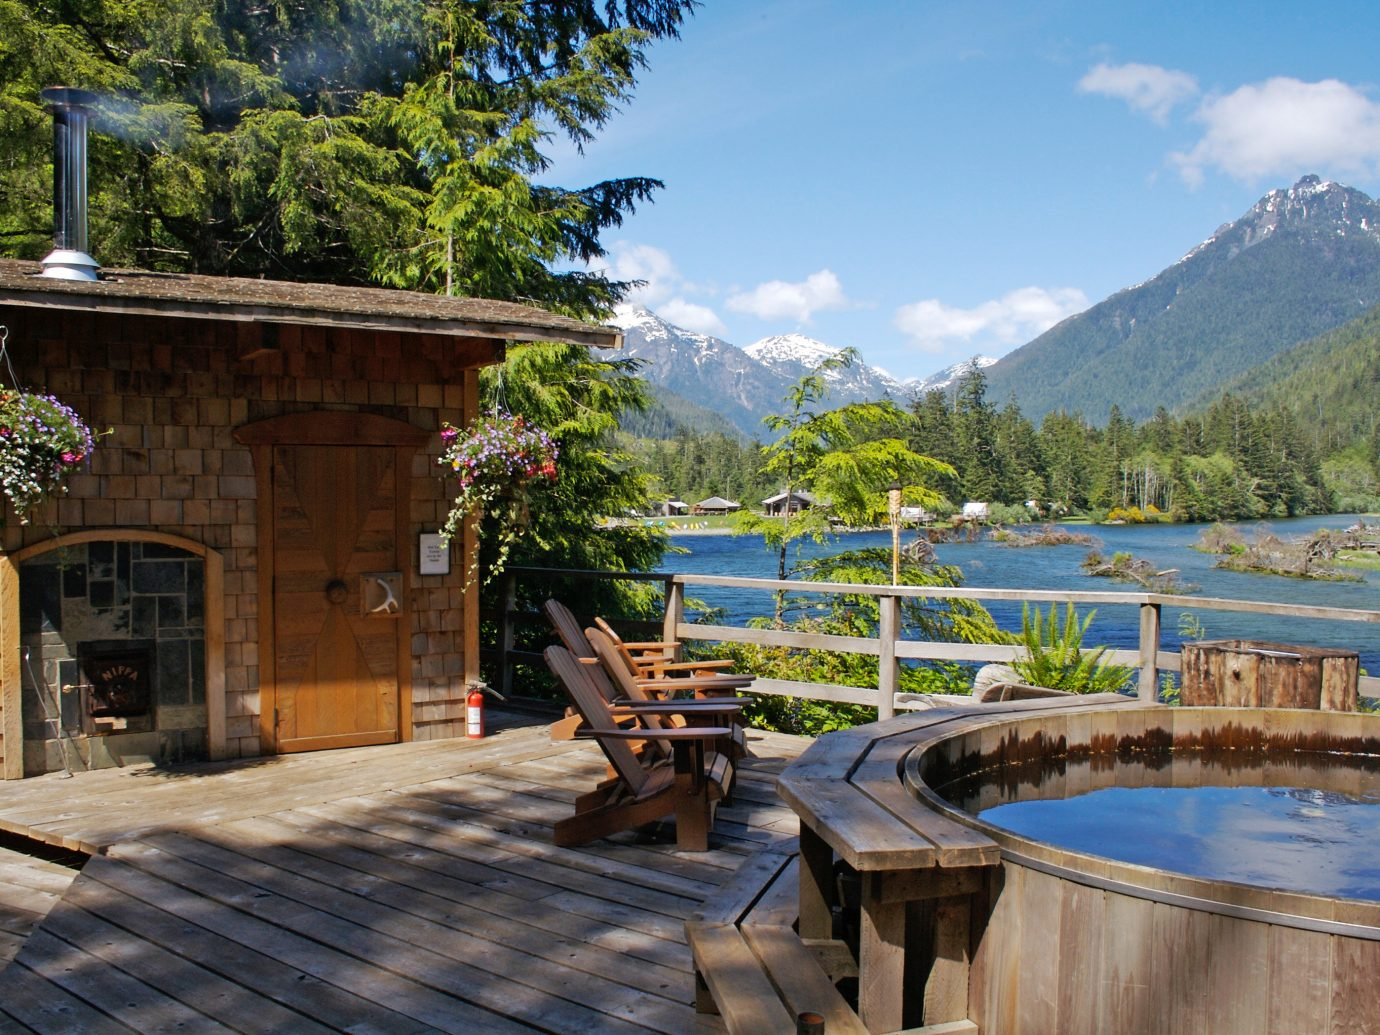 Adventure Deck Family Glamping Hot tub/Jacuzzi Luxury Travel Mountains Outdoors Play Romantic Rustic Scenic views Trip Ideas Waterfront Wellness outdoor tree mountain leisure estate vacation Resort swimming pool tourism Village backyard cottage